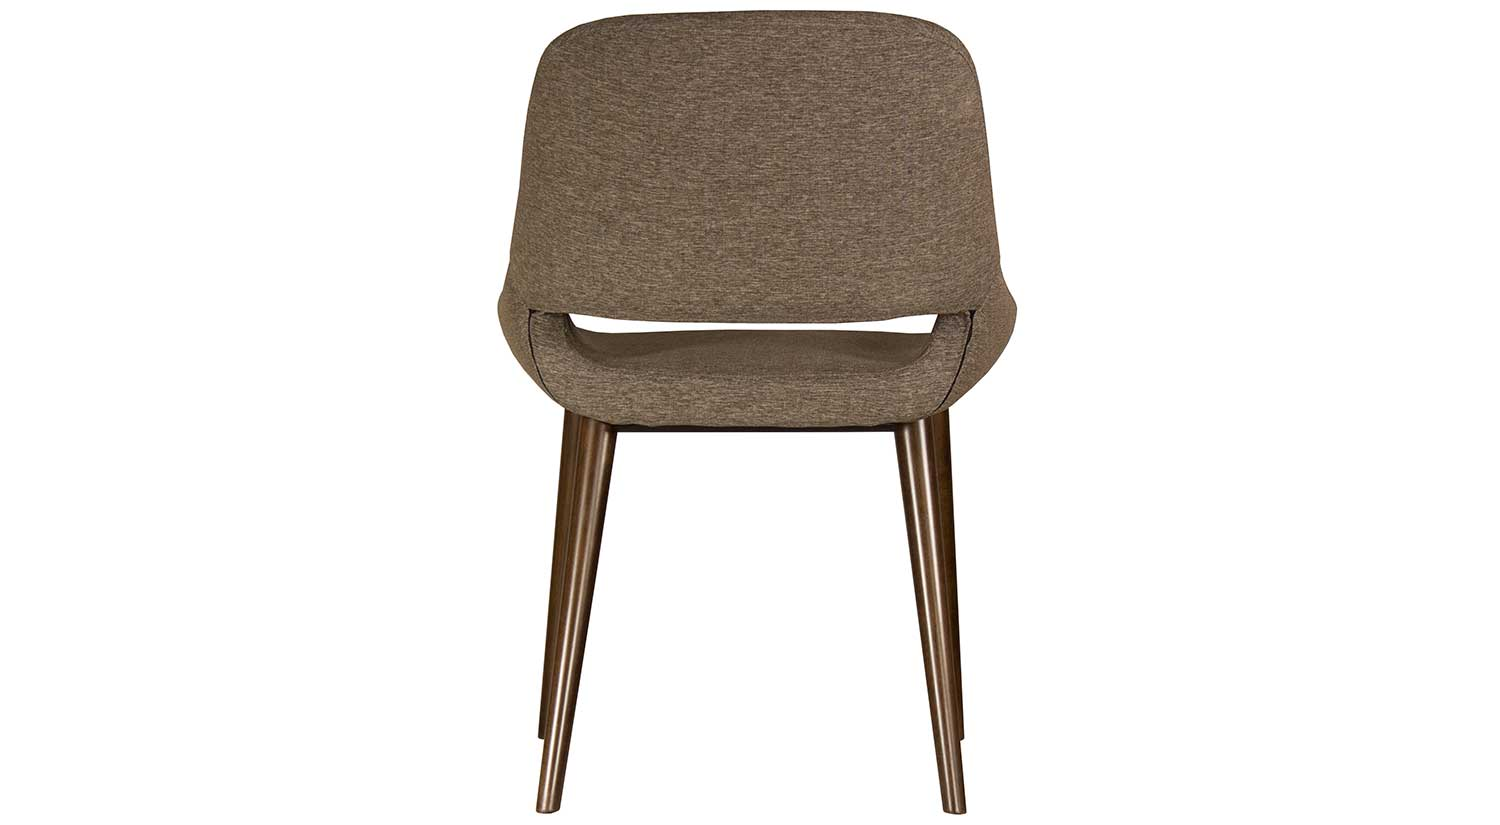 Circle Furniture Hera Dining Chair Upholstered Dining